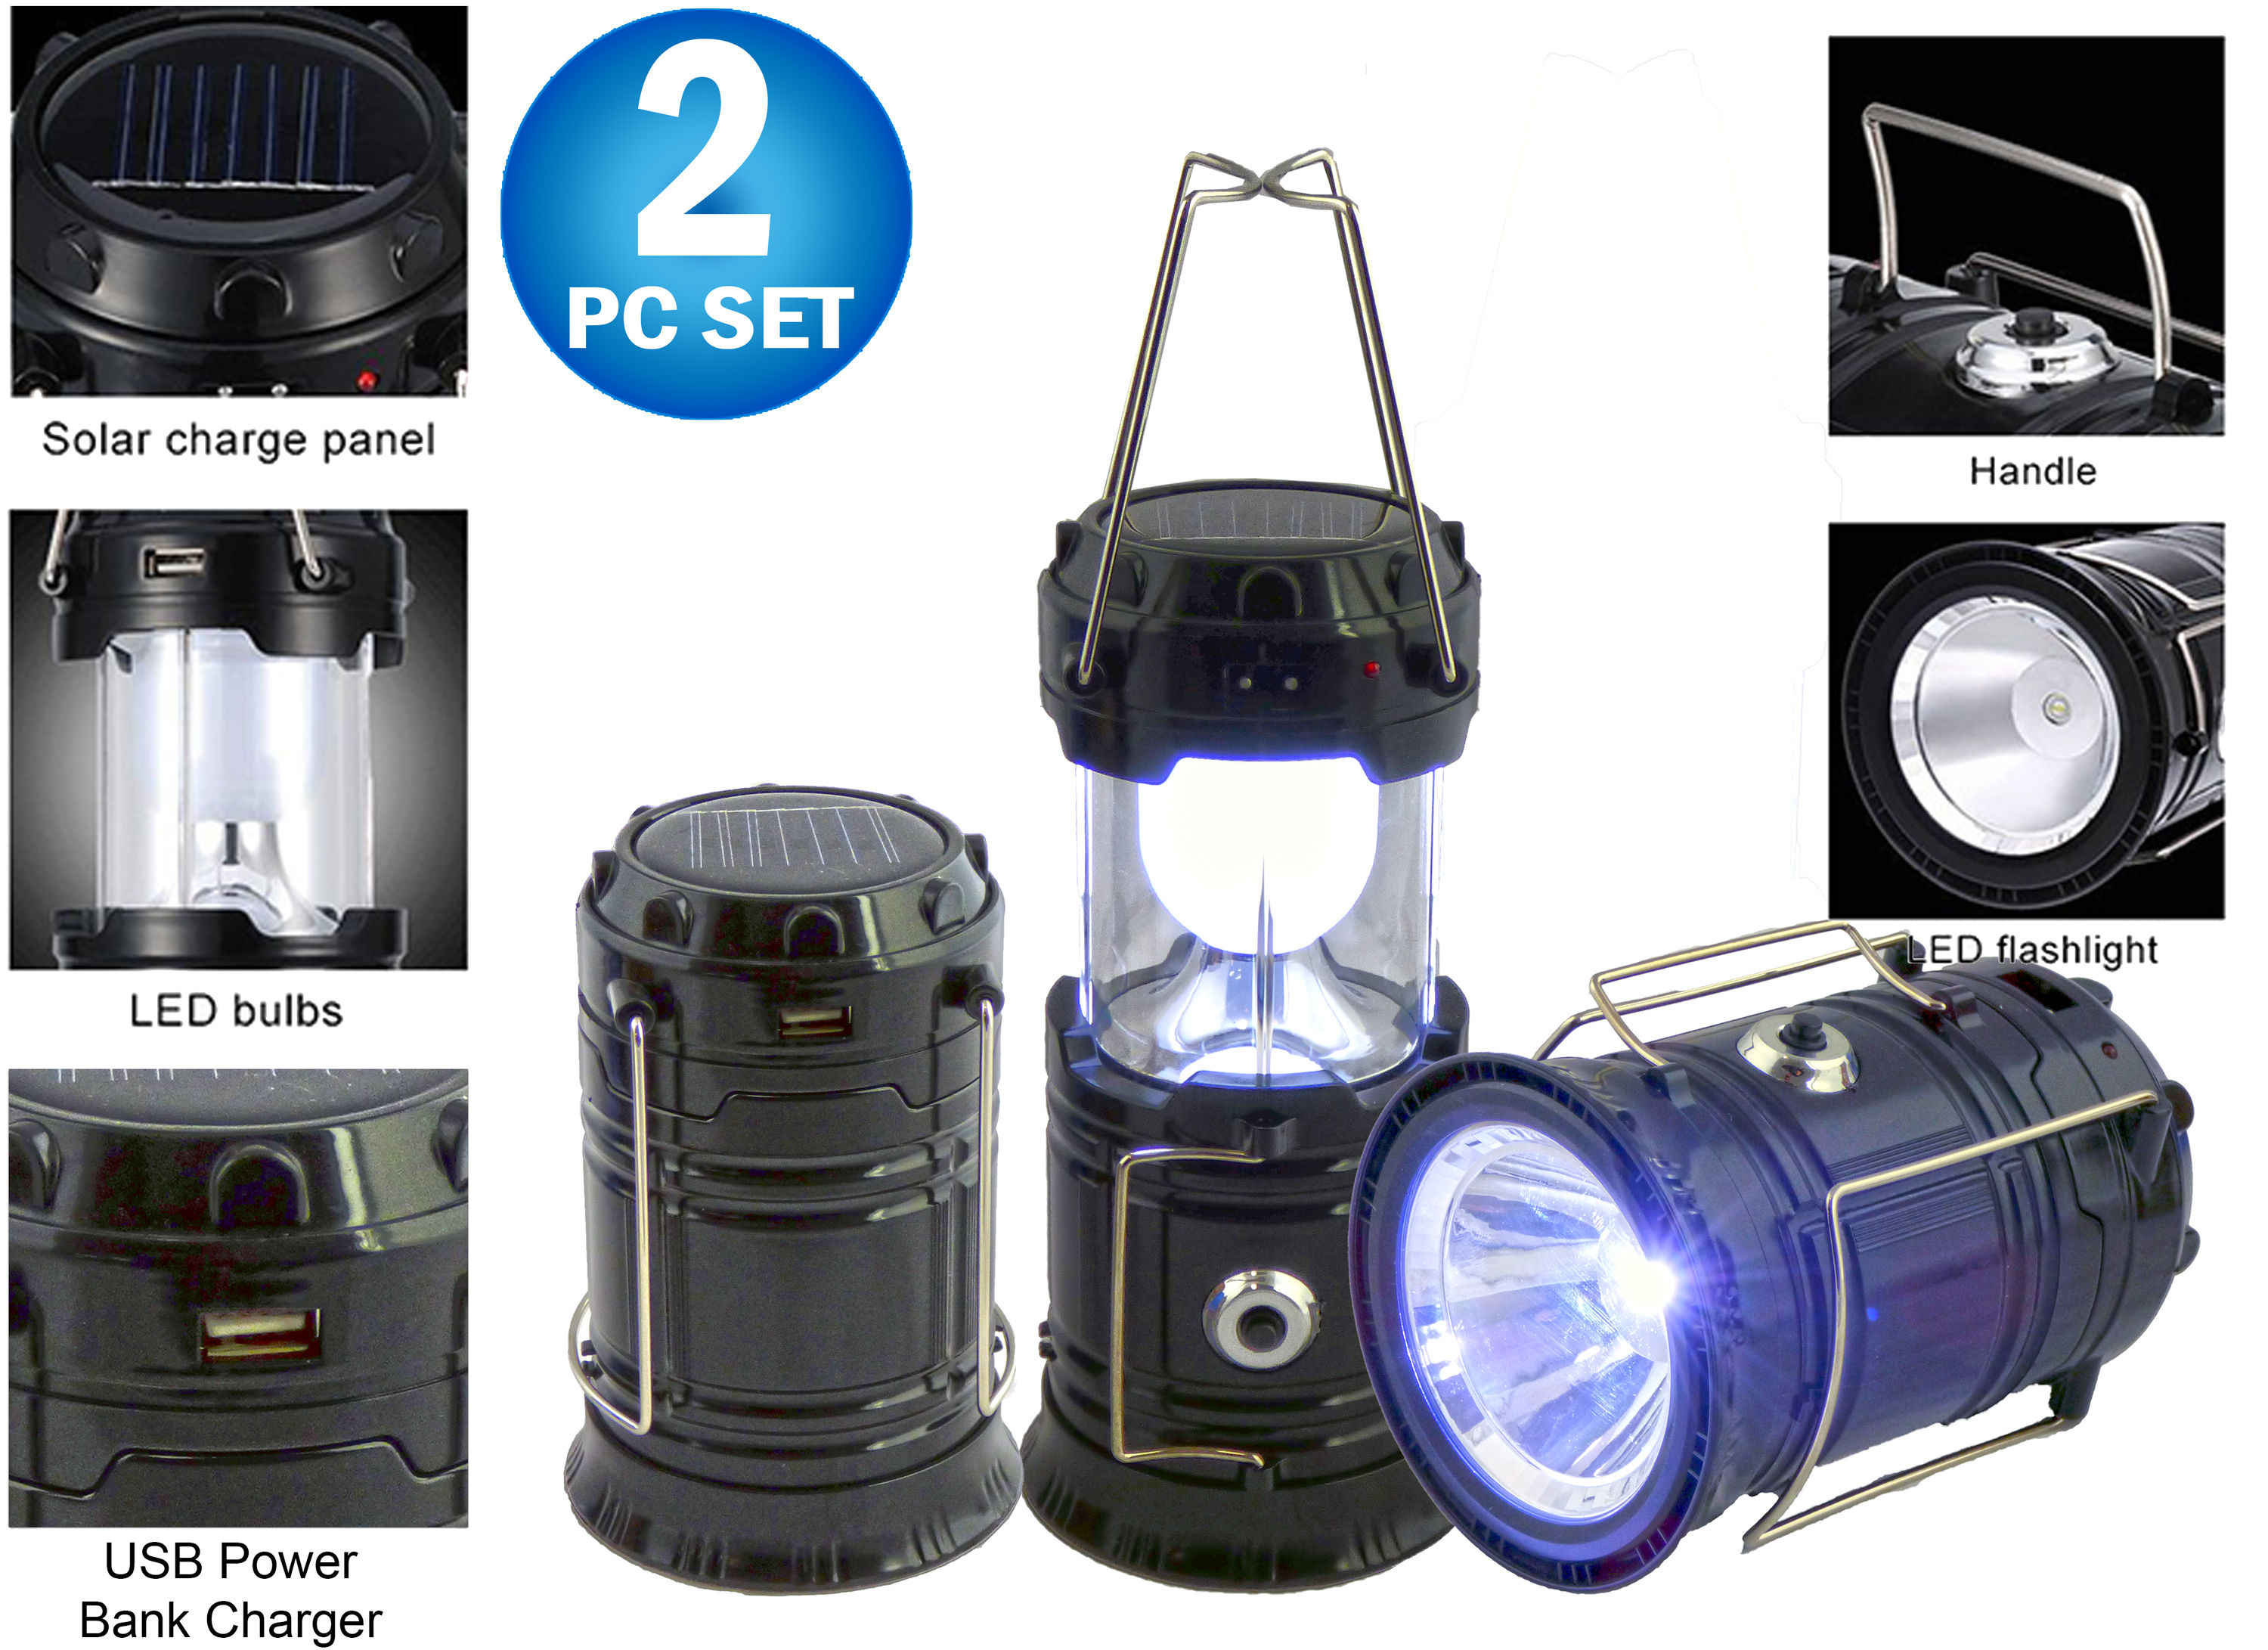 2pc Solar Rechargeable Tactical 3-in-1 Bright Collapsible LED Lantern, Flashlight, And USB Charging Station (Black) by